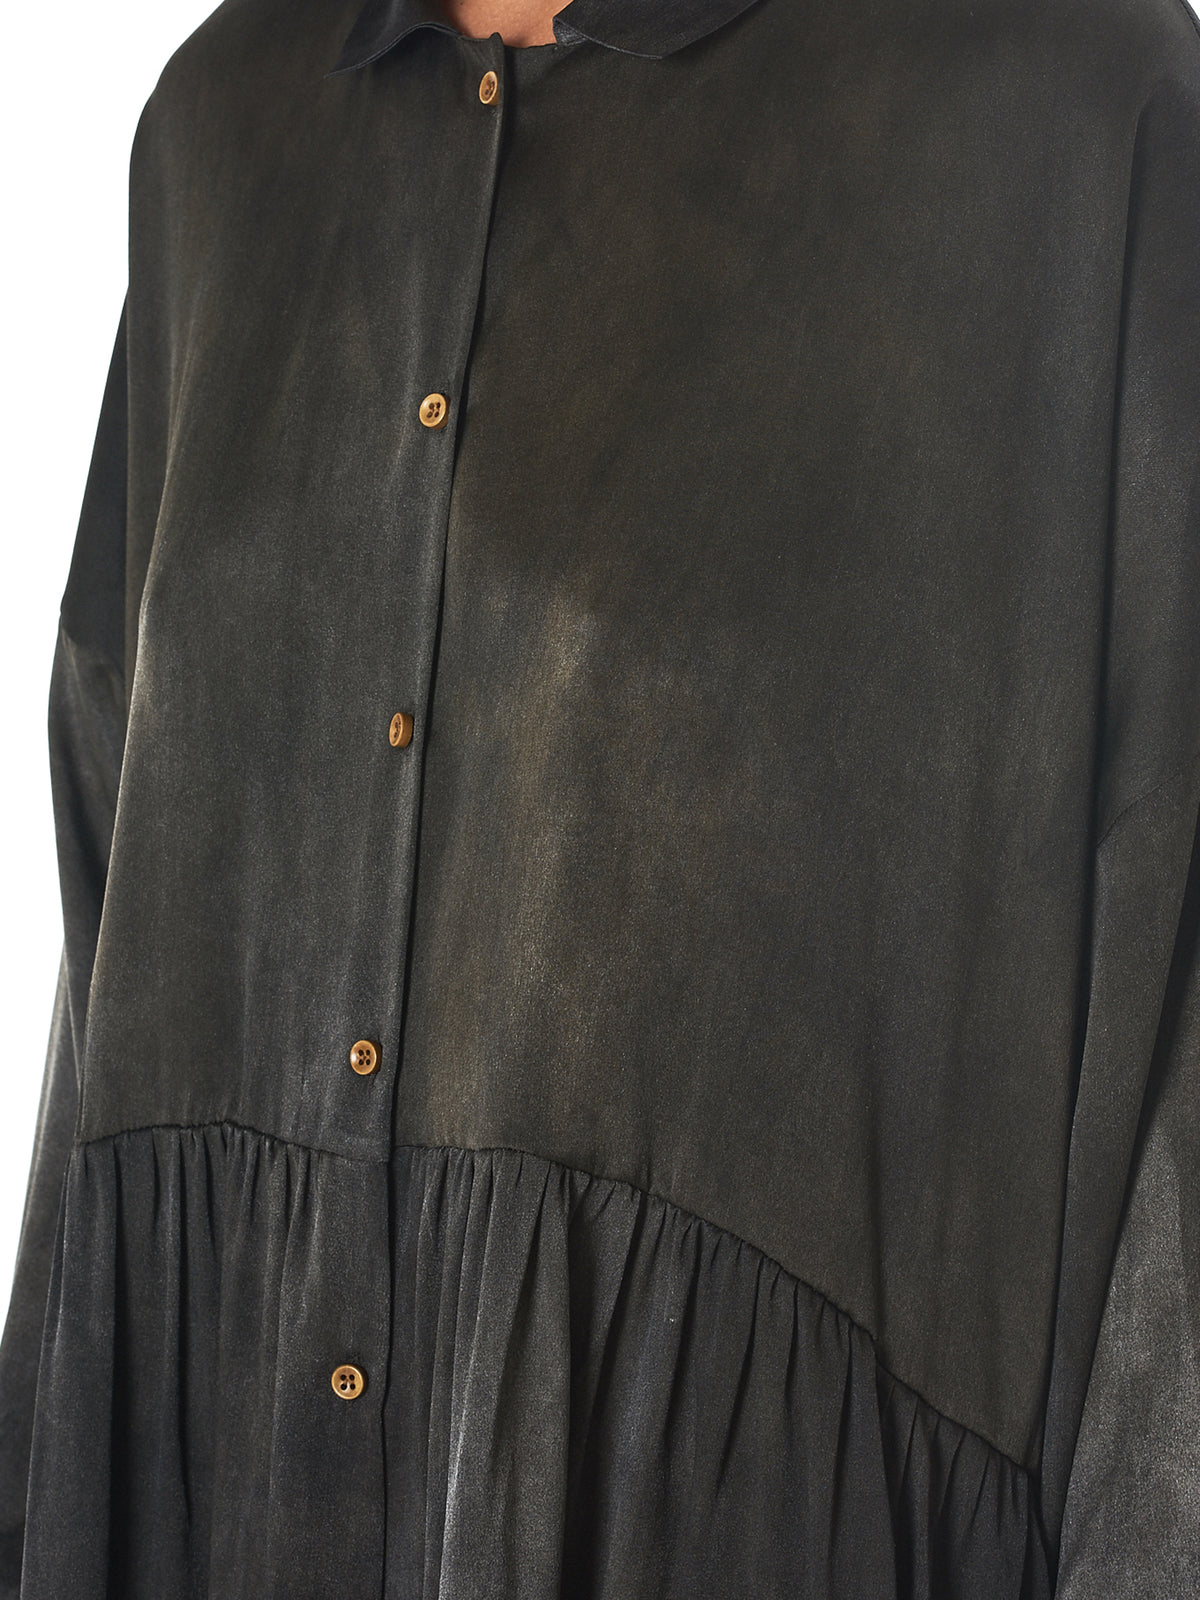 Uma wANG TULA SHIRT DRESS detail